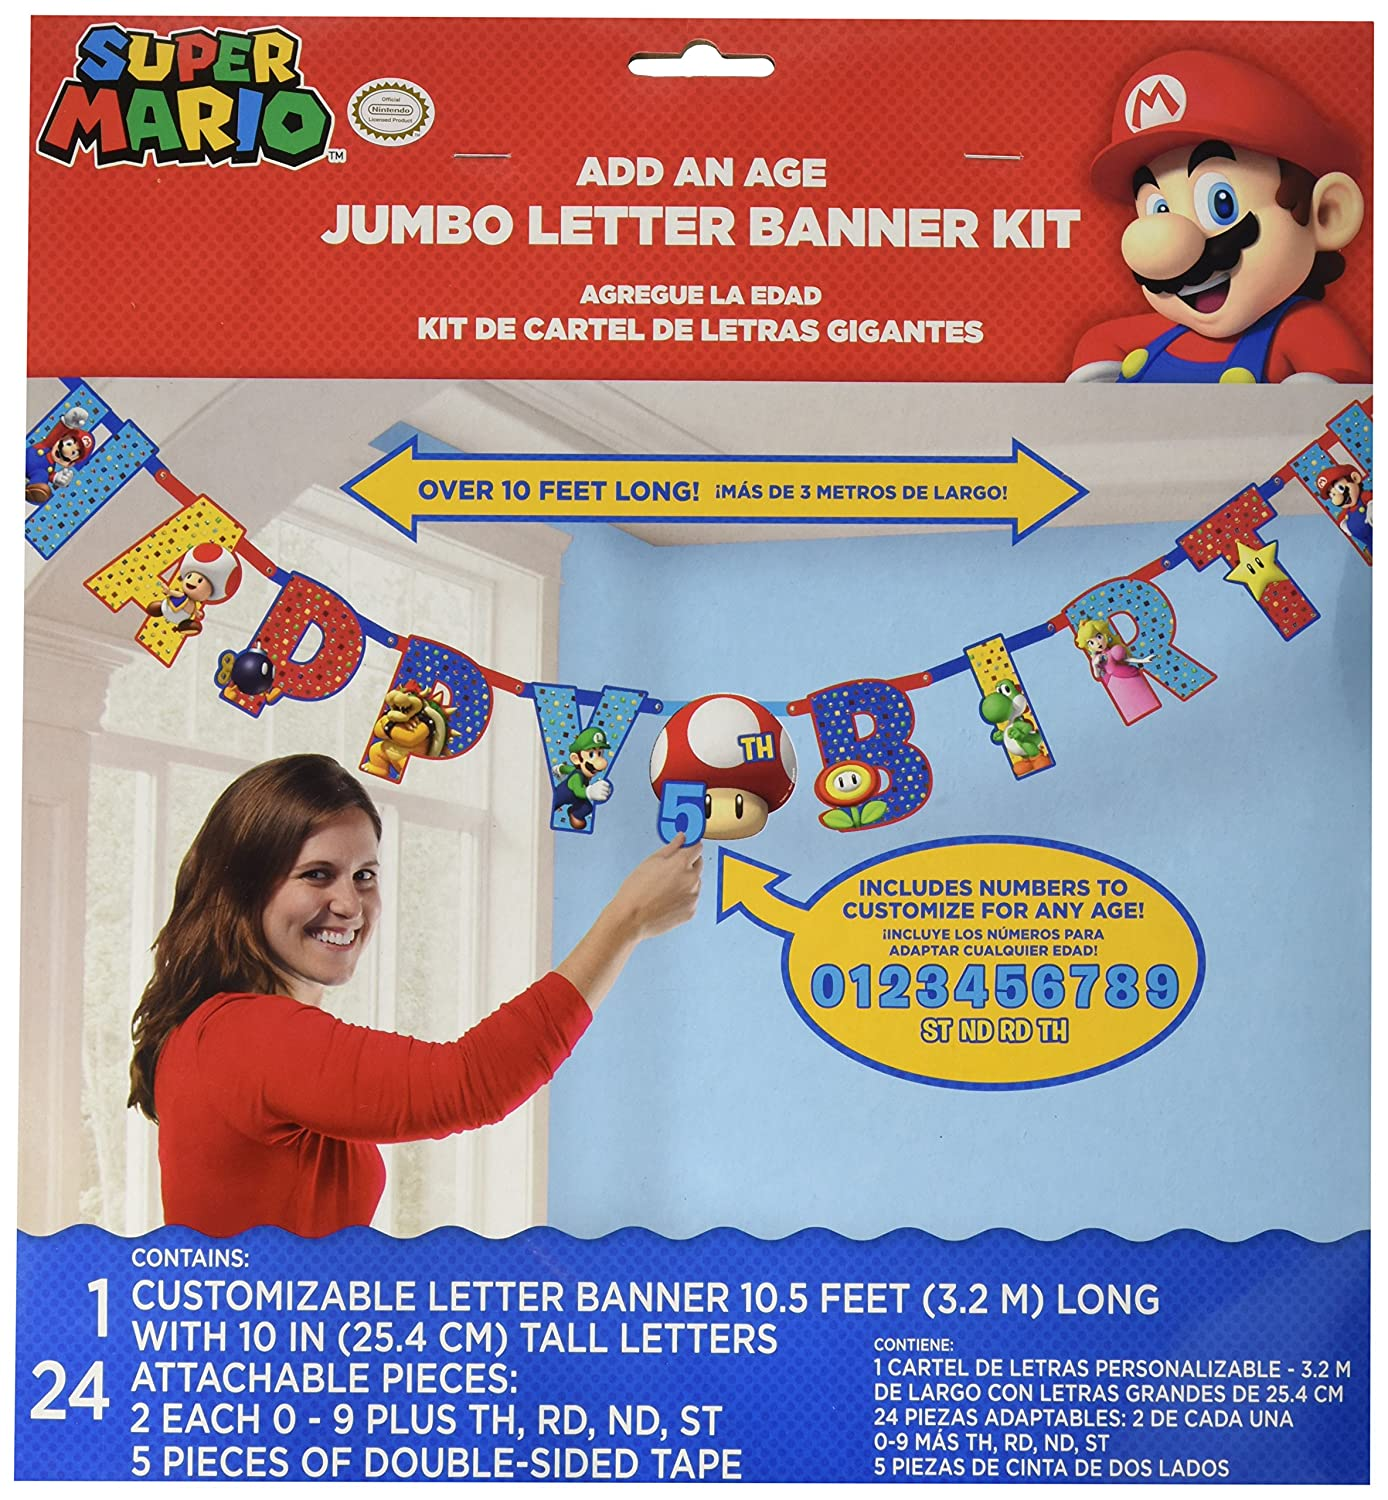 (Super Mario Brothers) - Amscan Super Mario Brothers Jumbo Add-an-Age Happy Birthday Letter Banner, 6 Ct.  Super Mario Brothers B077DQ56S5